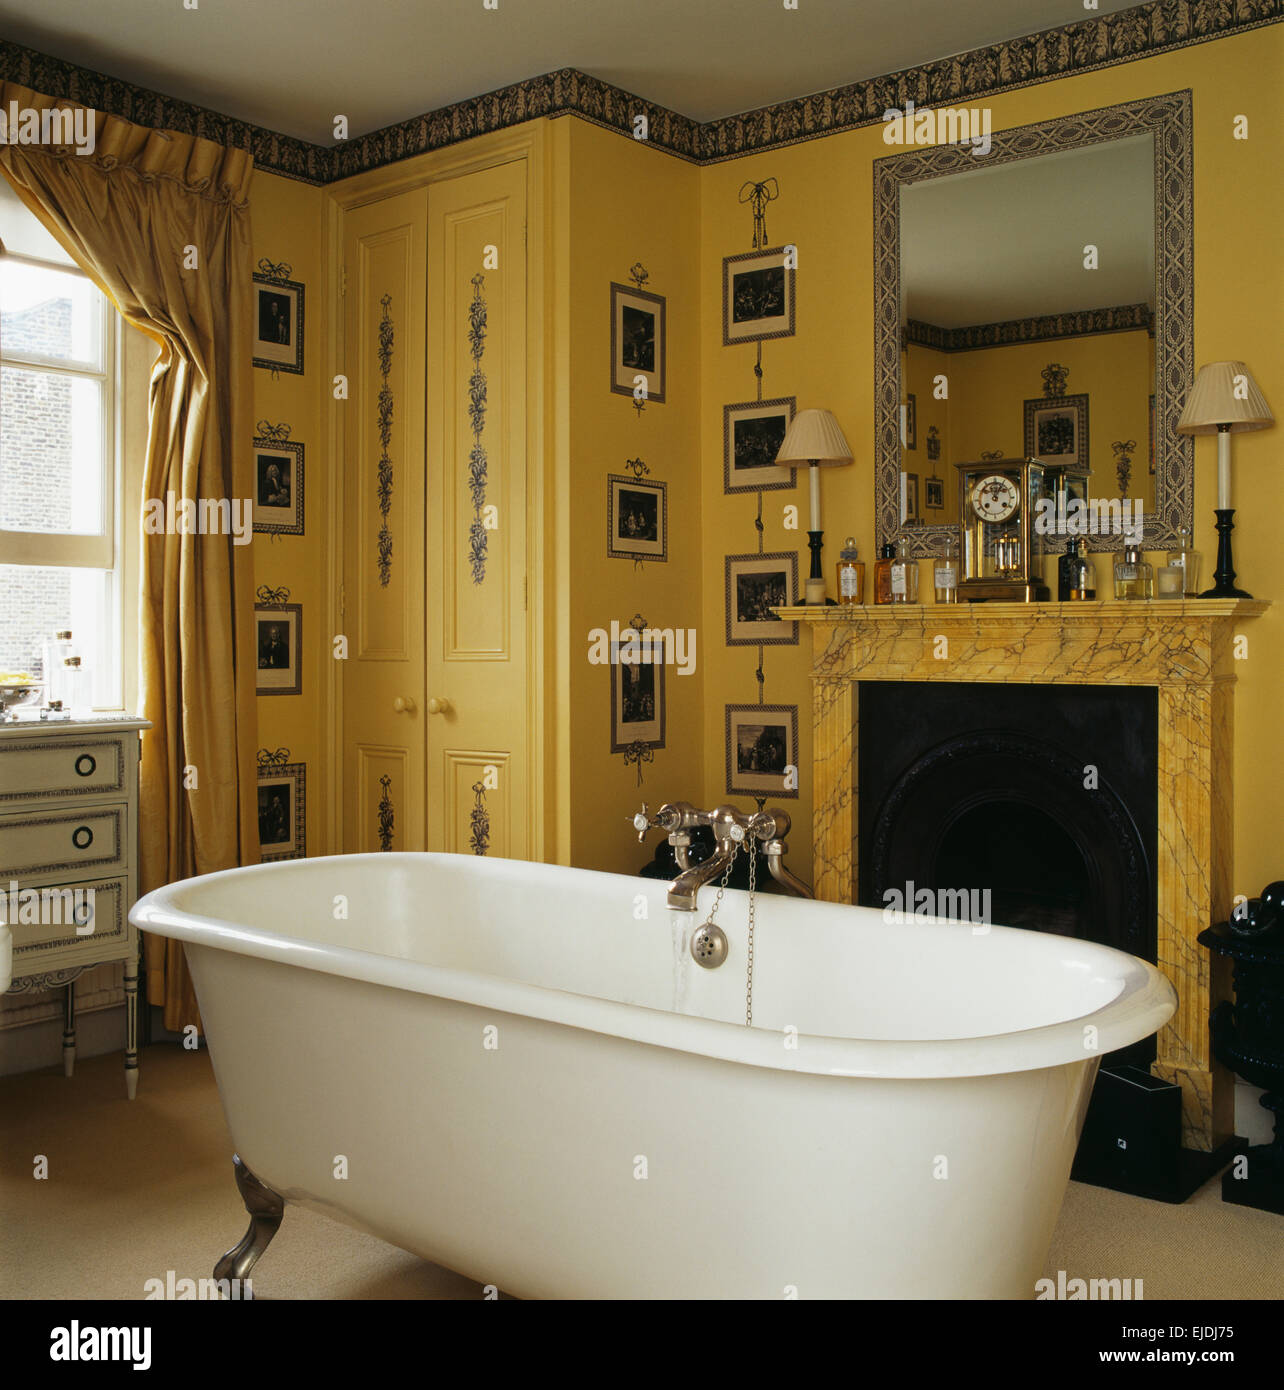 Print Room Wallpaper In Yellow Bathroom With Roll Top Bath In Front Of The  Fireplace